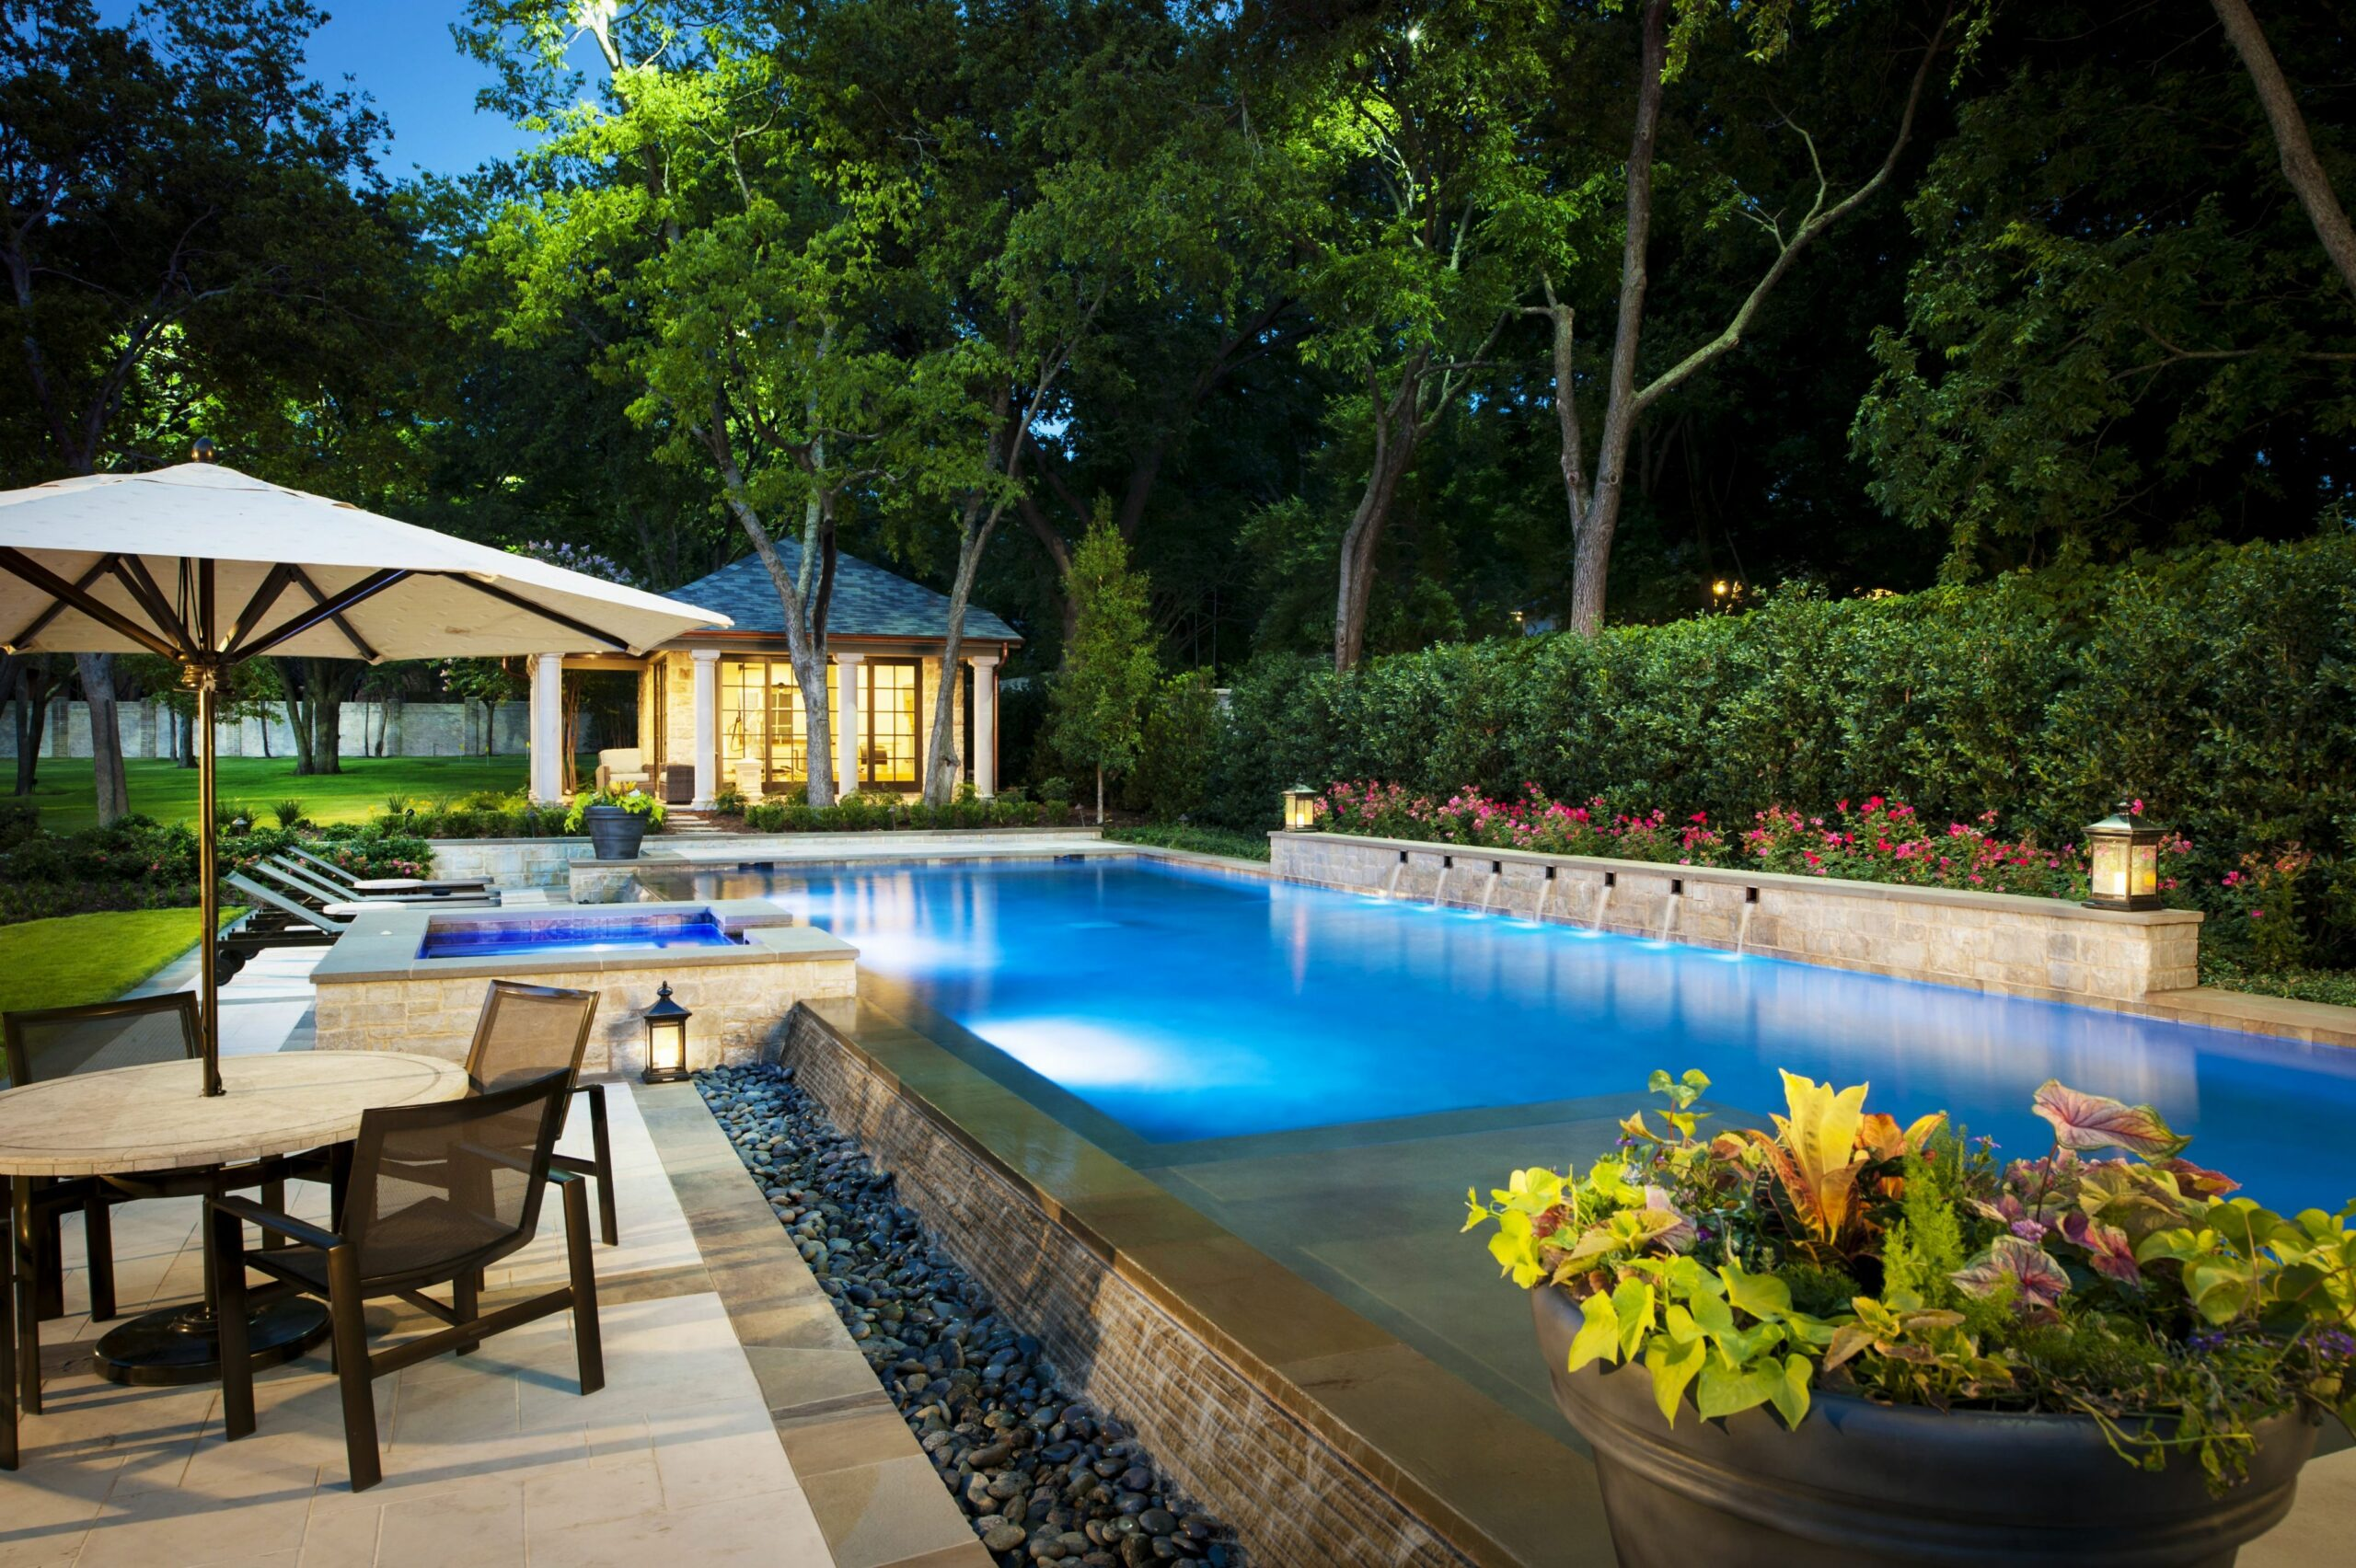 11 In-Ground Pool Designs - Best Swimming Pool Design Ideas for ..